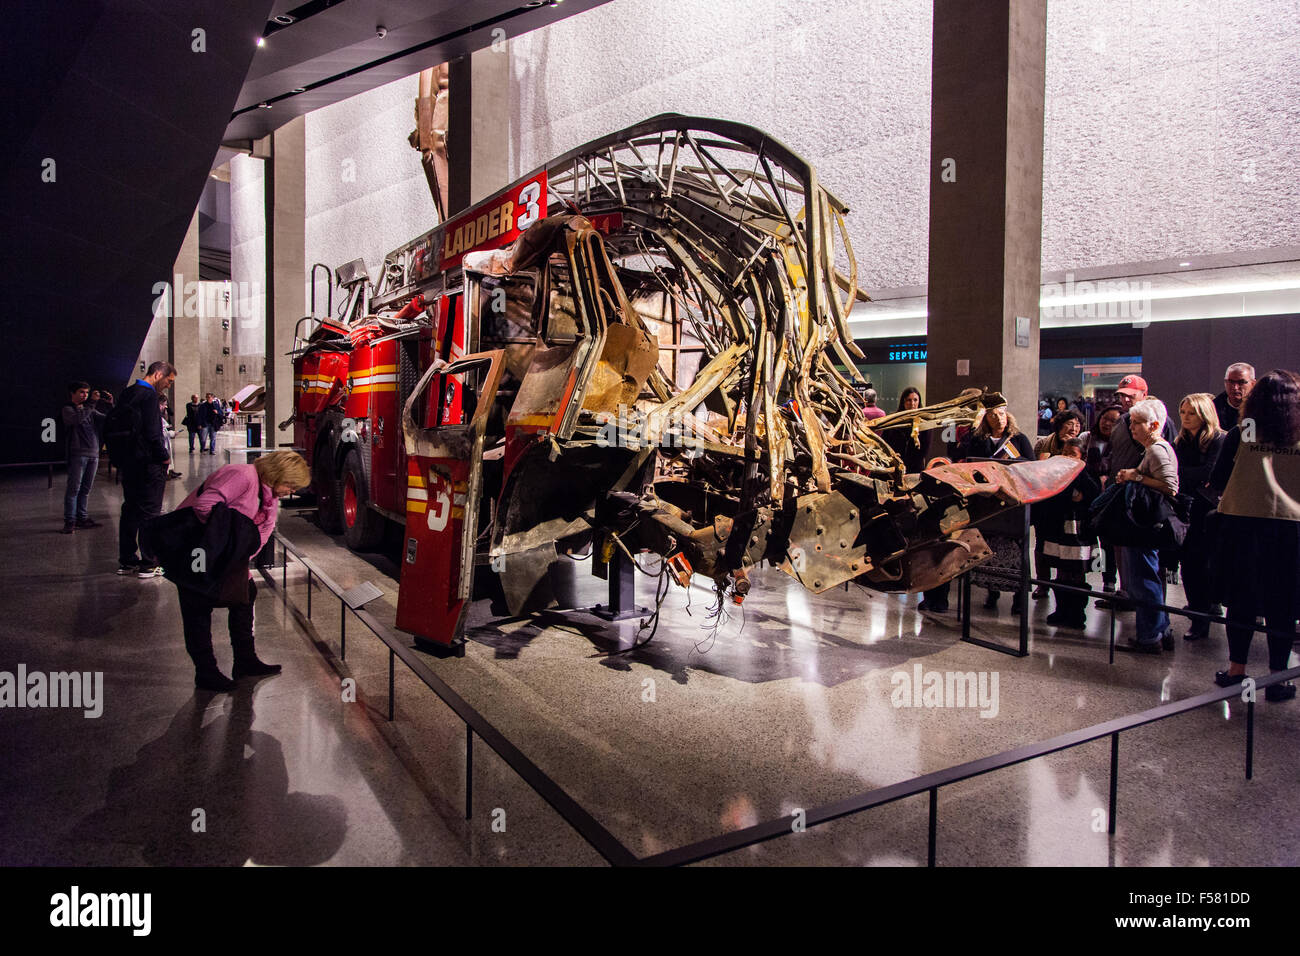 Crushed fire truck, ladder 3, National September 11 Memorial & Museum 9/11, New York City, United States of - Stock Image